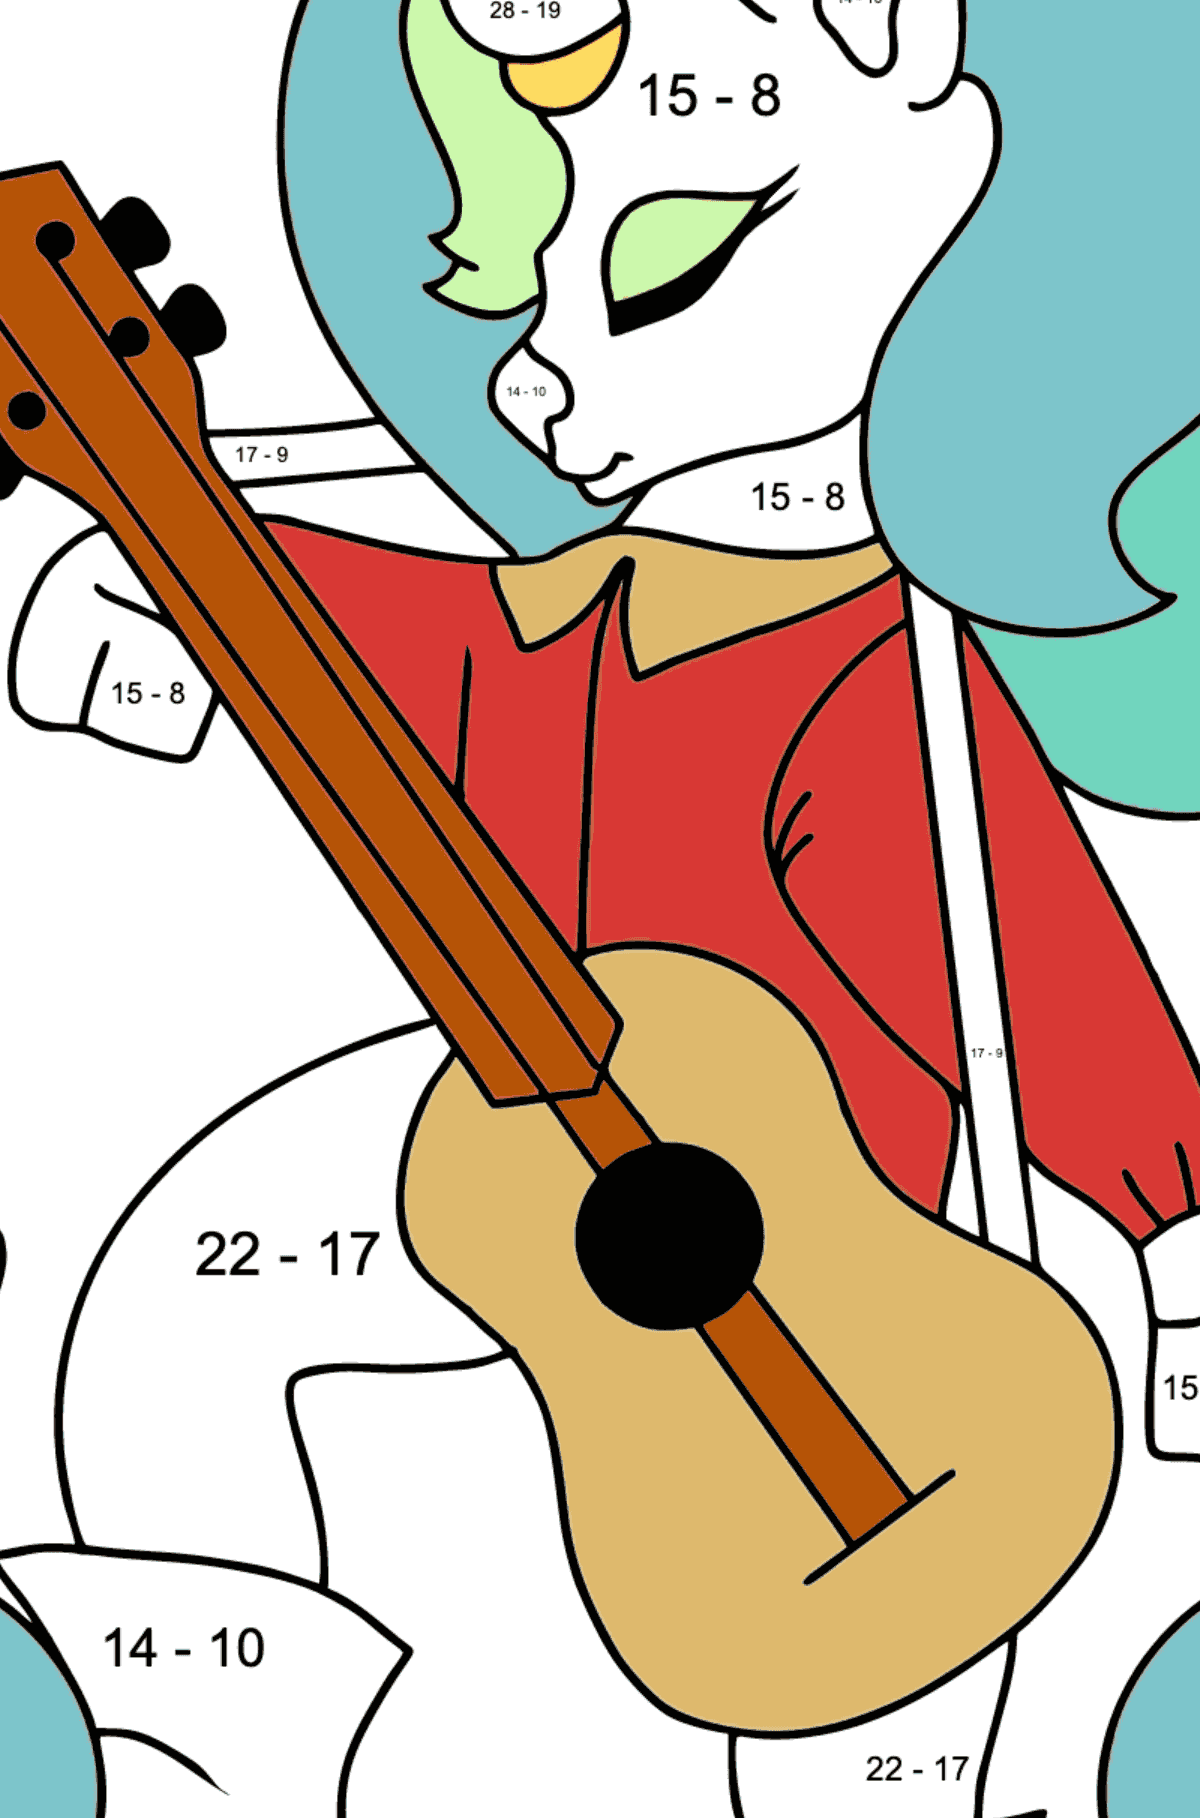 Complex Coloring Page - A Unicorn with a Guitar for Kids  - Color by Number Substraction